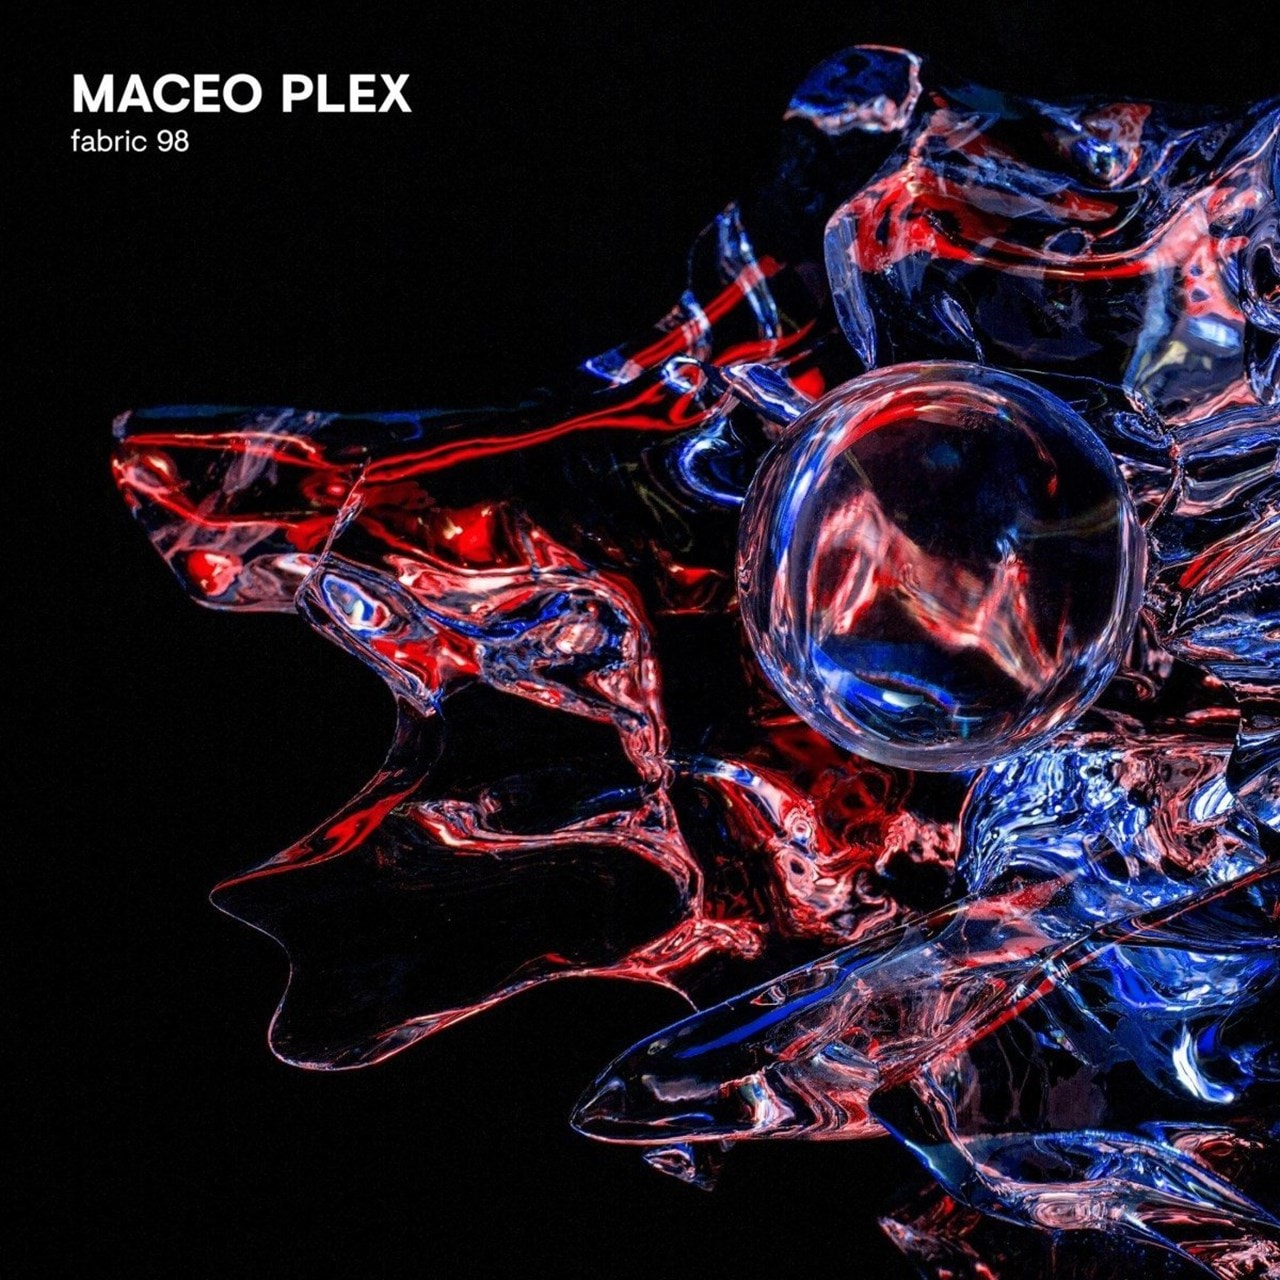 Fabric 98: Mixed By Maceo Plex - 1